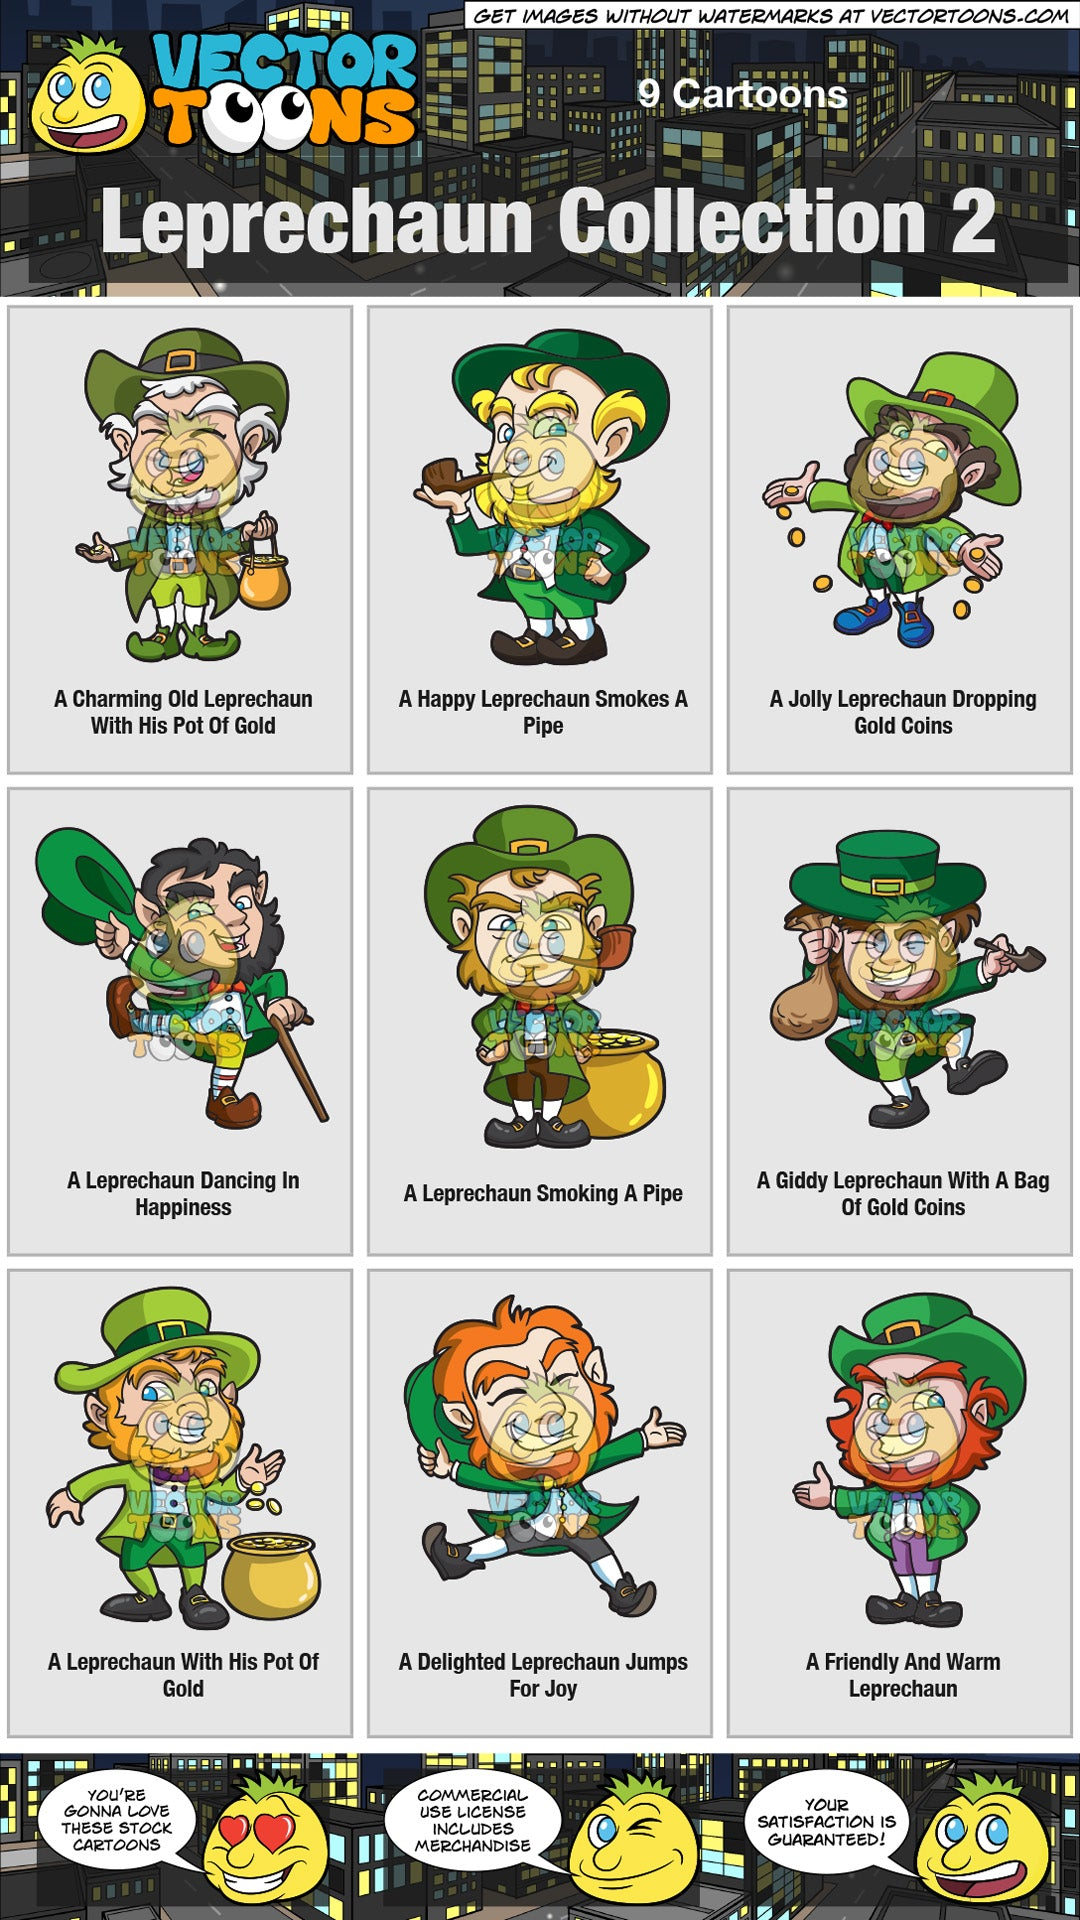 Leprechaun Collection 2